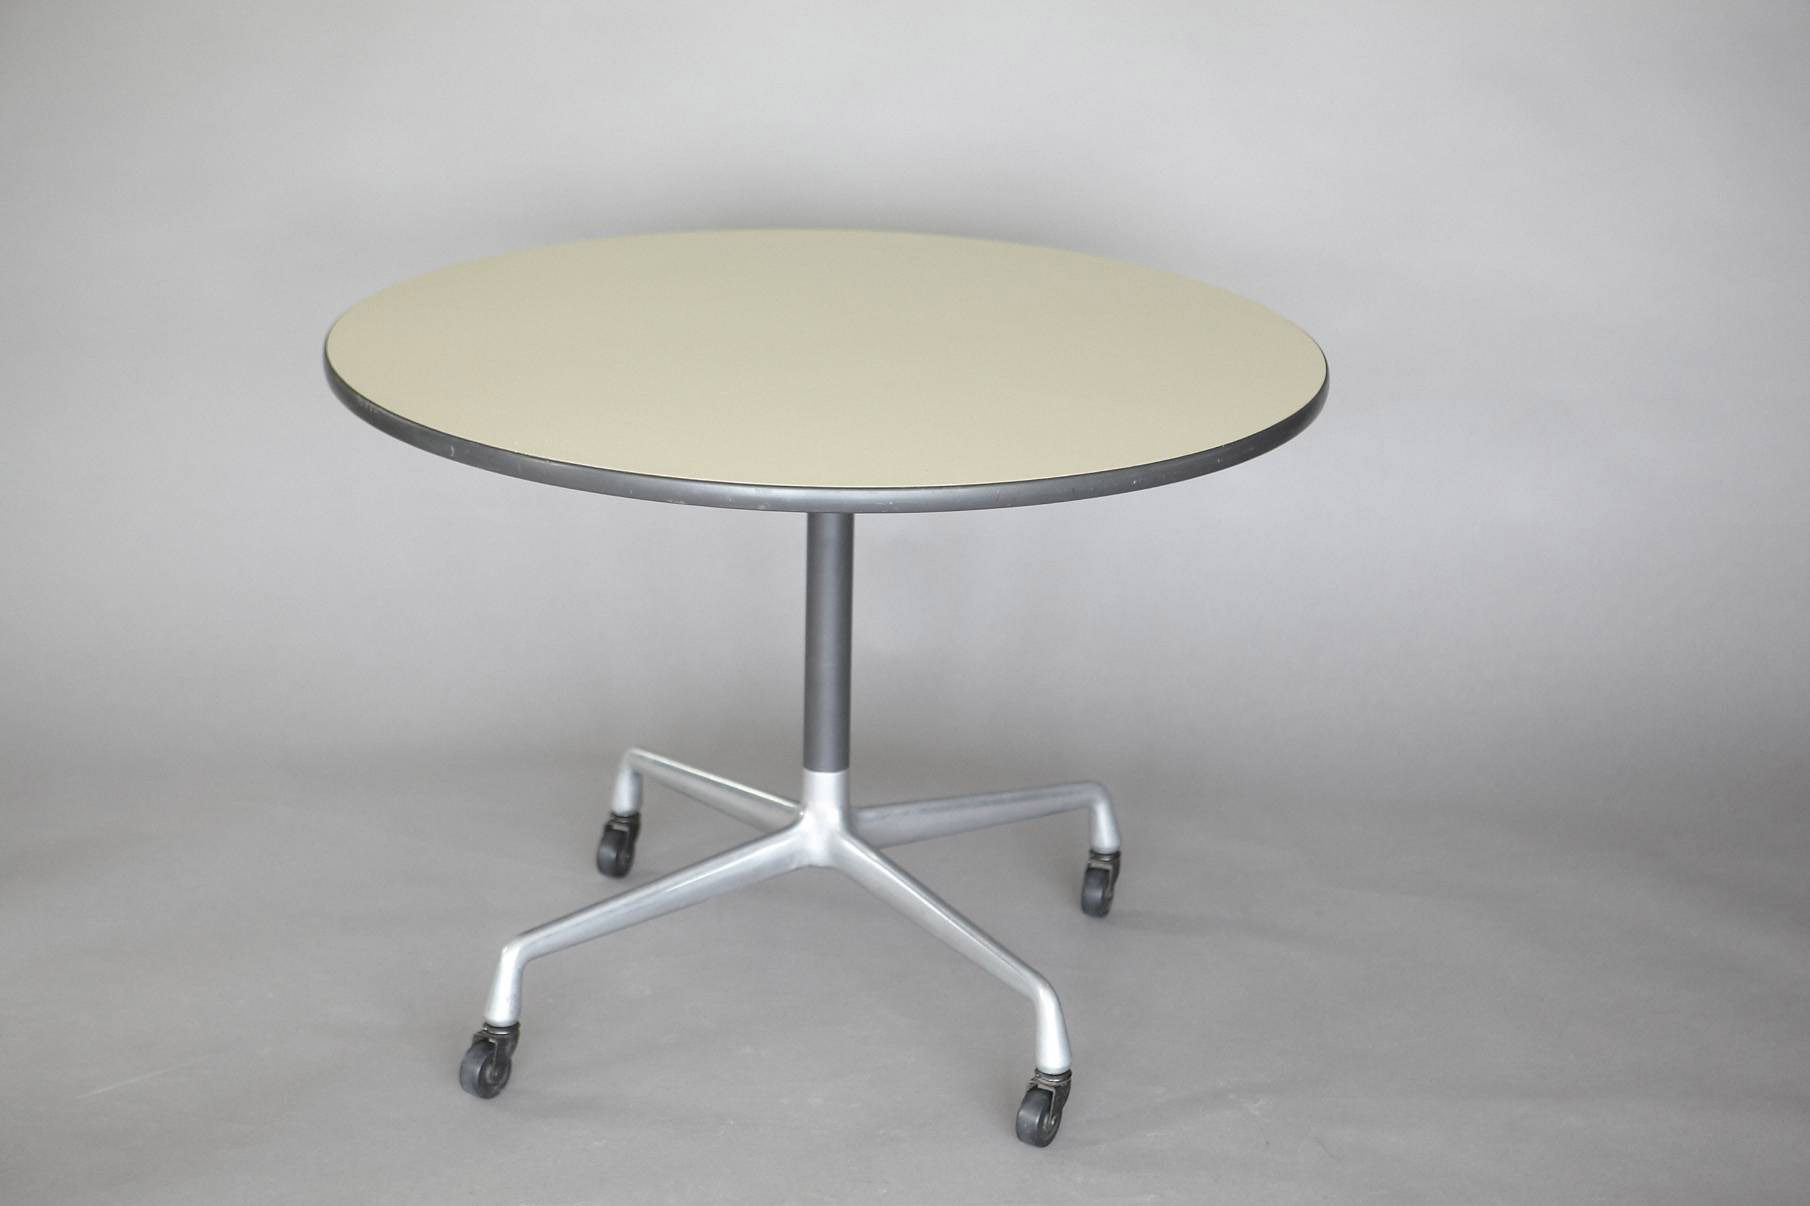 Eames Side Table George Nelson U0026 Eames Style Pedestal End